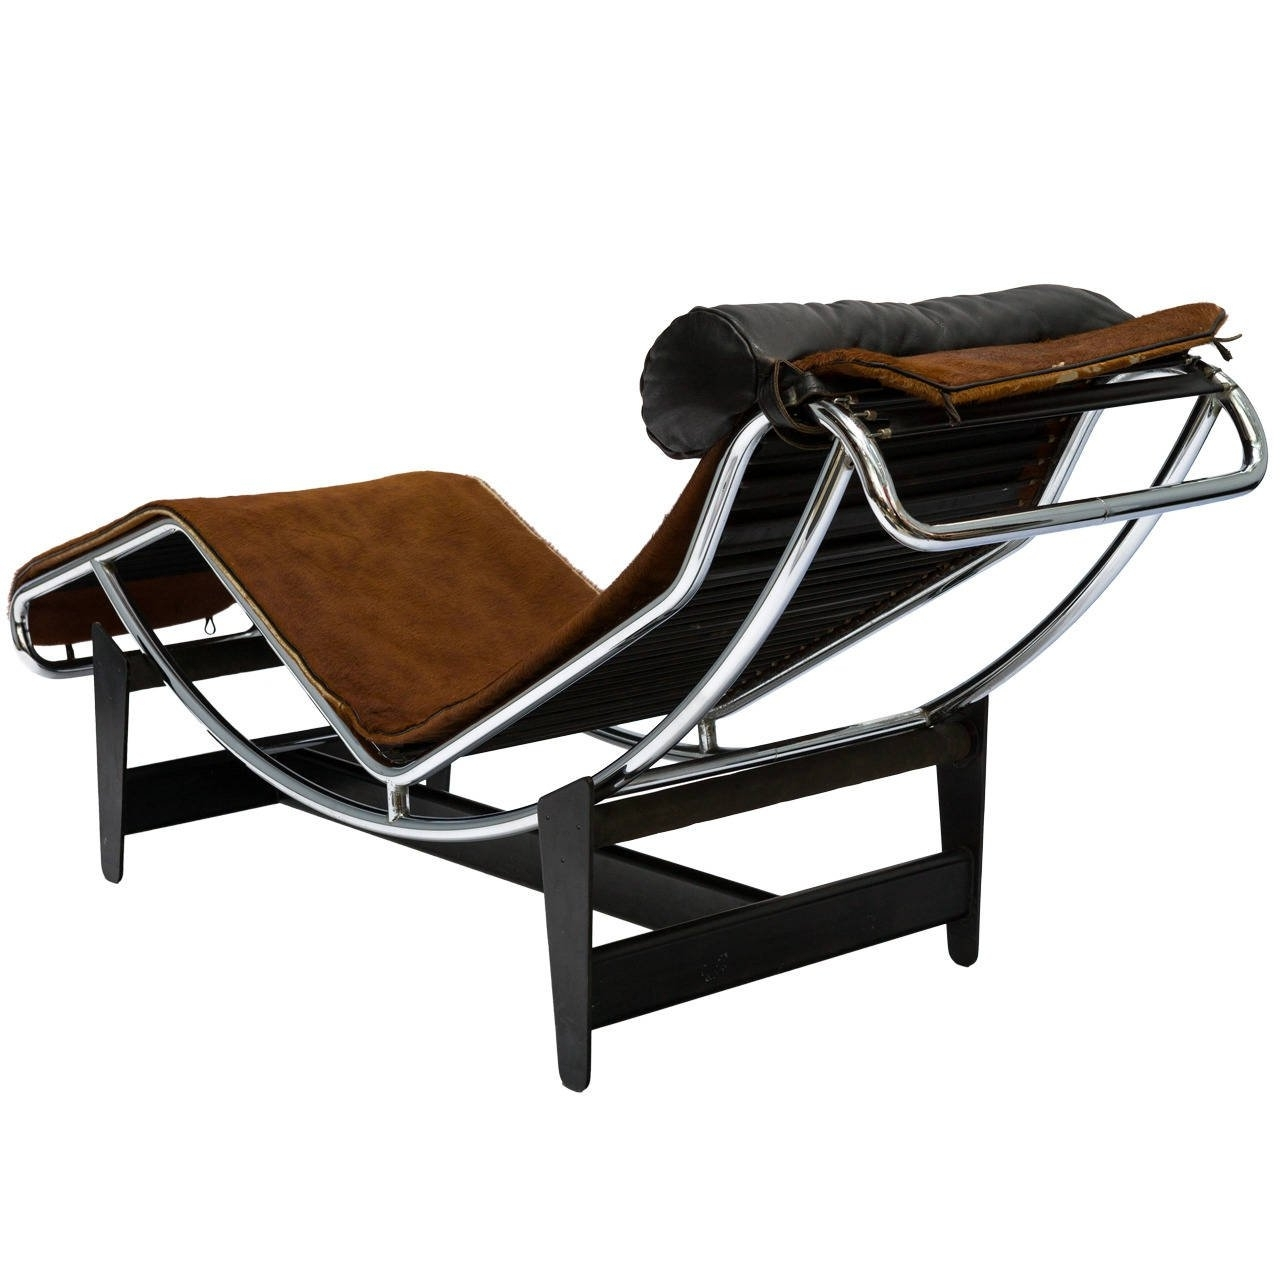 Brown Chaise Lounge Chair By Le Corbusier In Trendy Le Corbusier Lc4 Chaise Lounge Chair In Cowhide For Sale At 1stdibs (View 3 of 15)